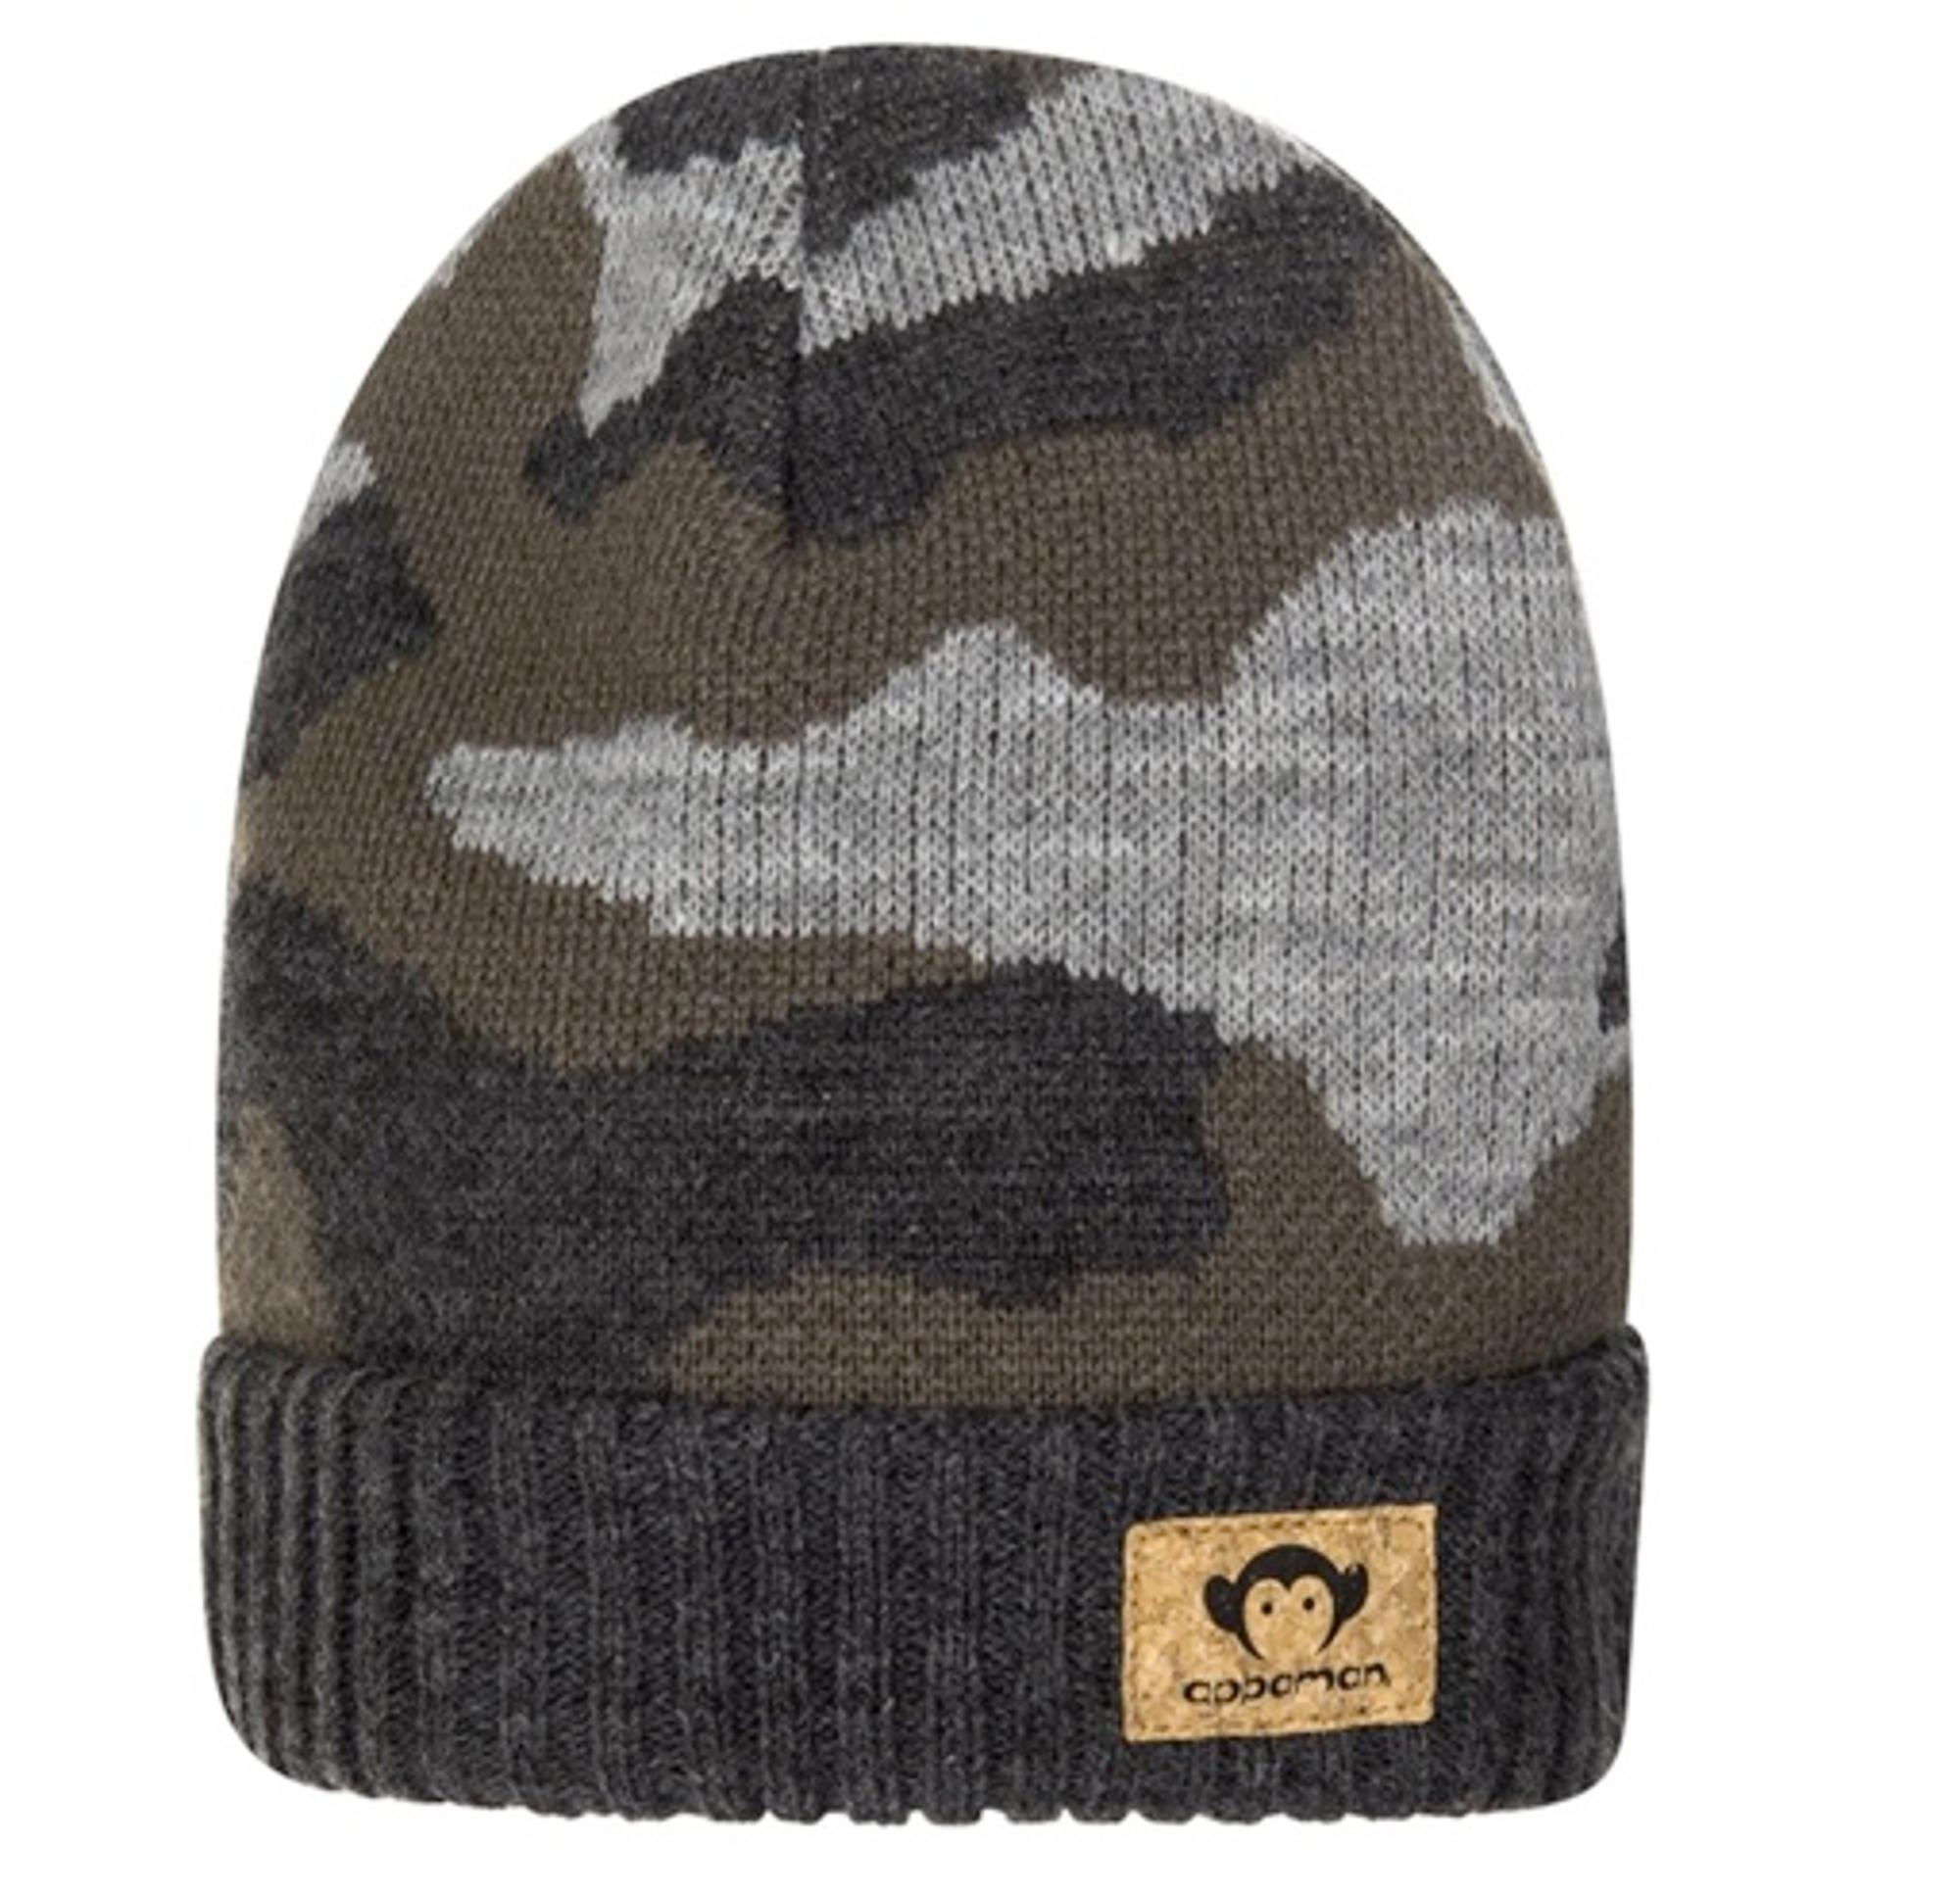 Appaman Boost Hat in Olive Camo